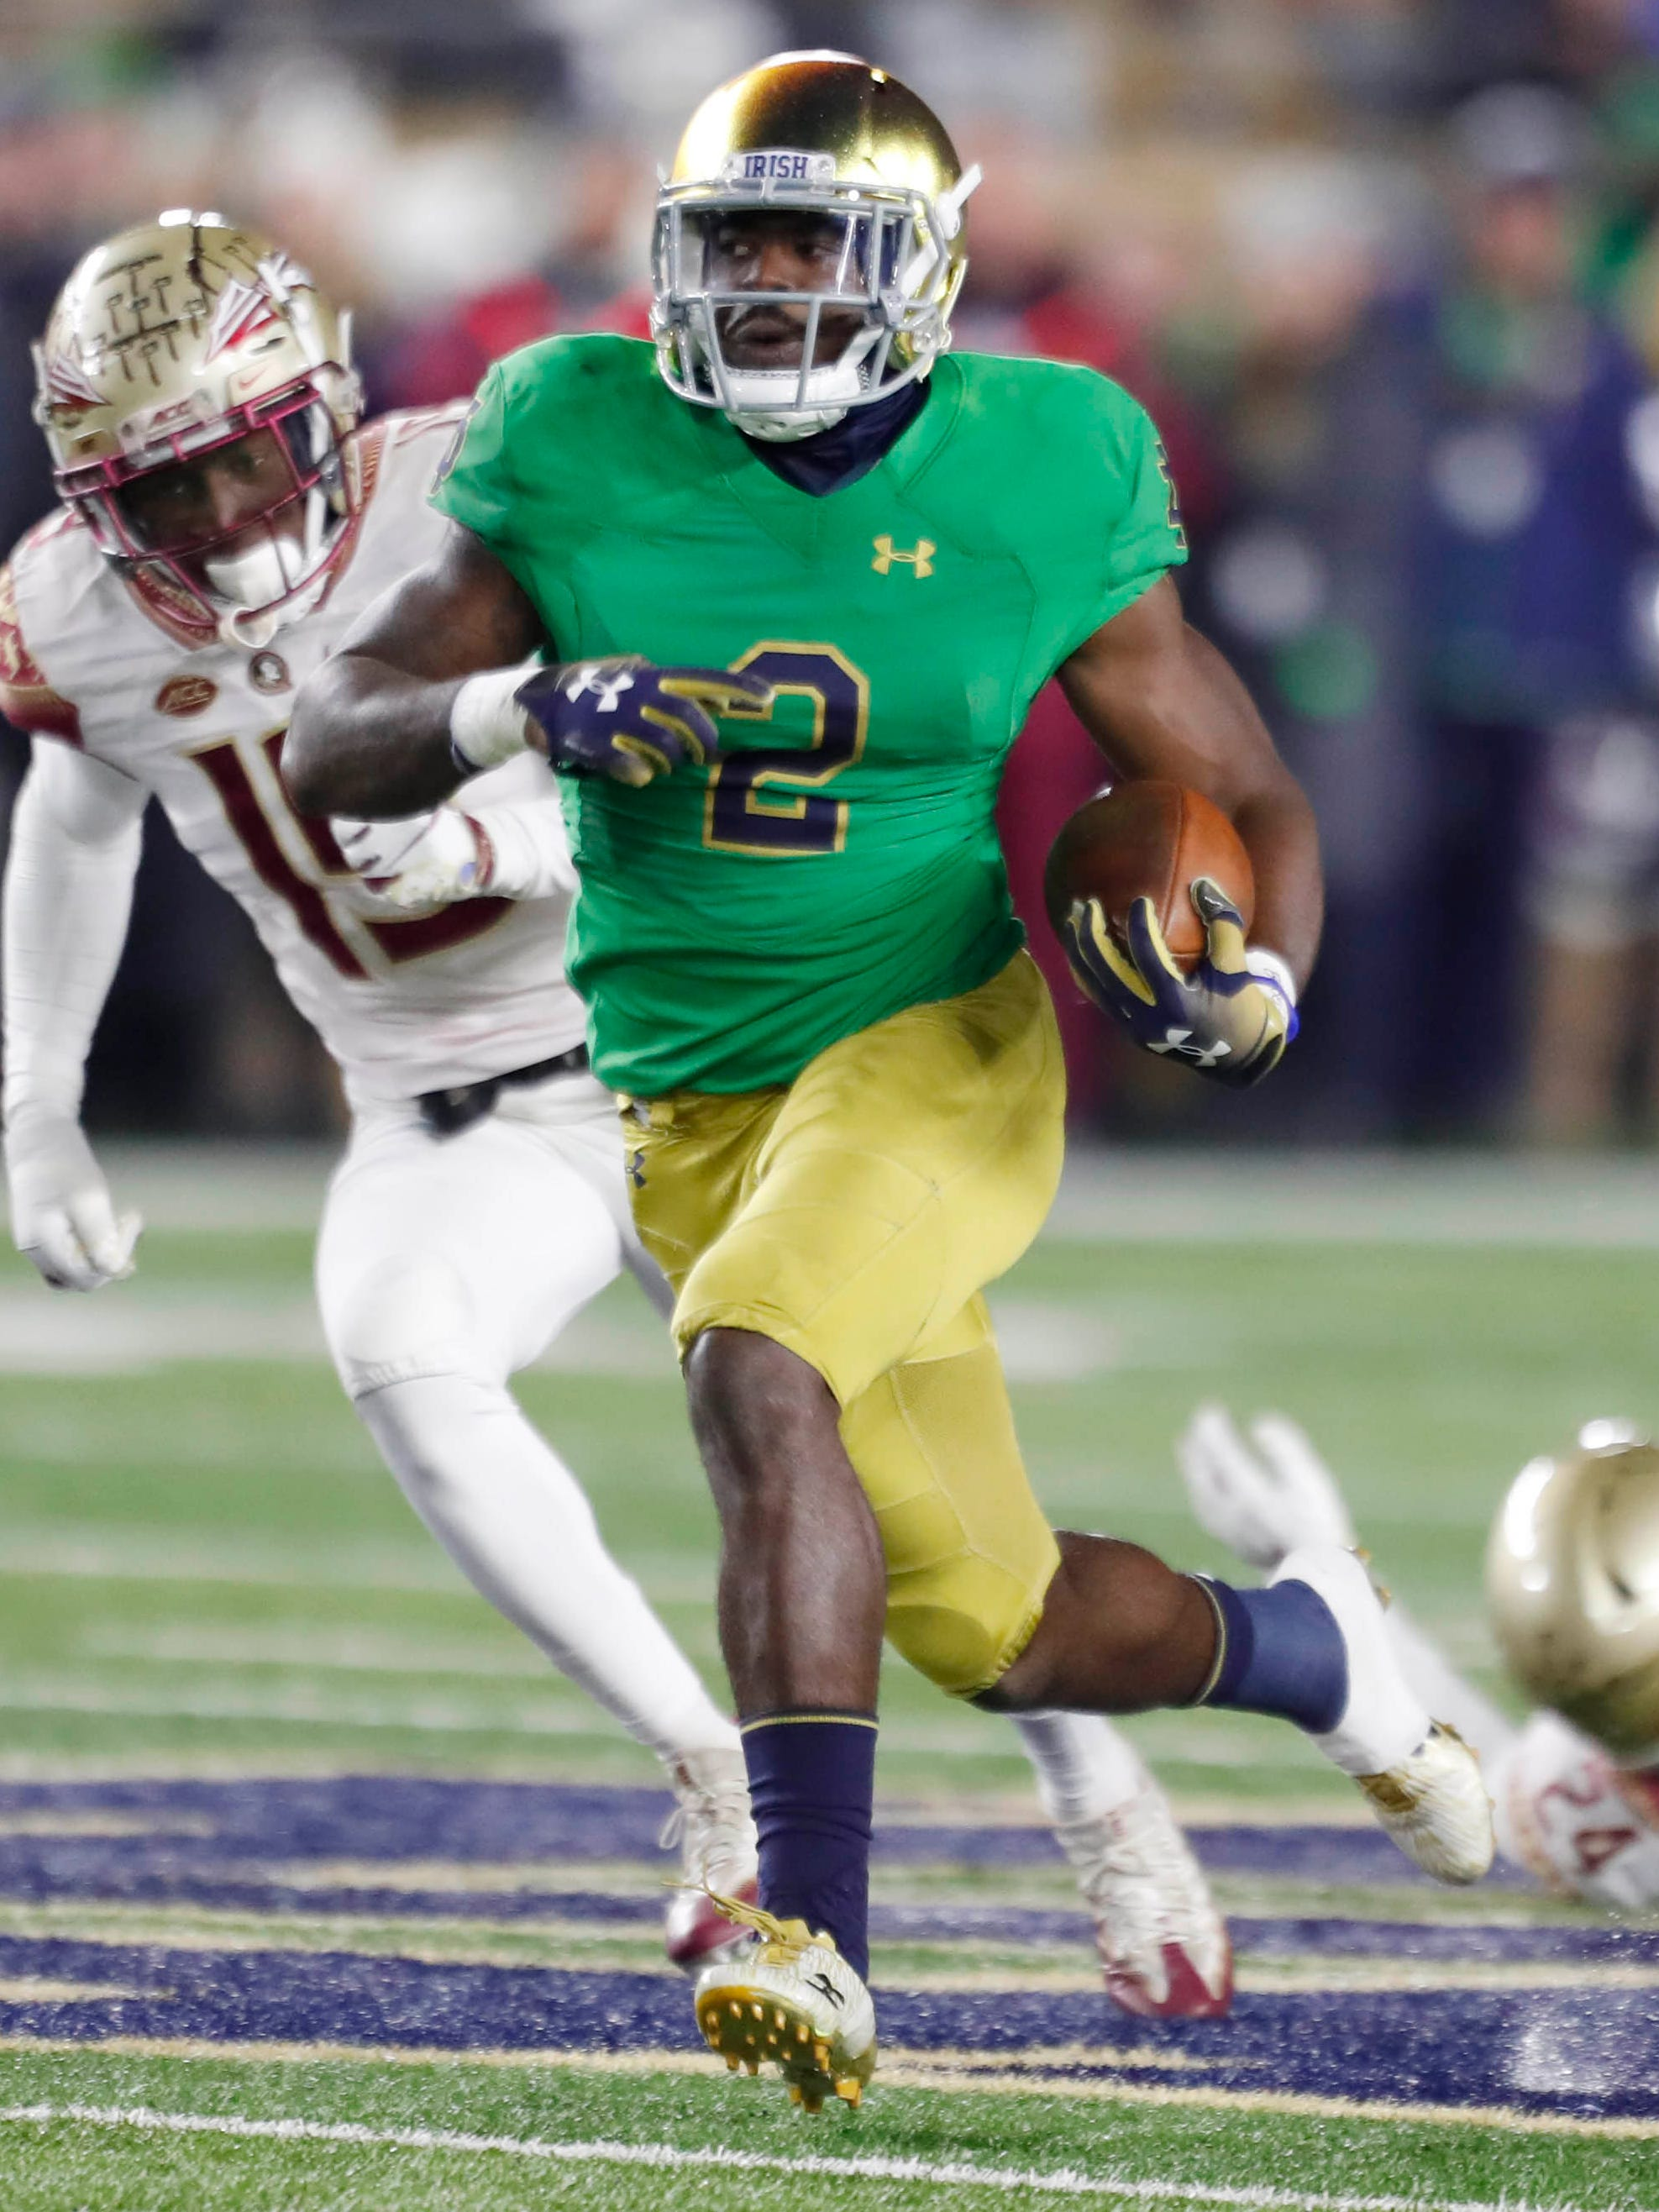 Notre Dame running back Dexter Williams breaks free for a touchdown  against Florida State.